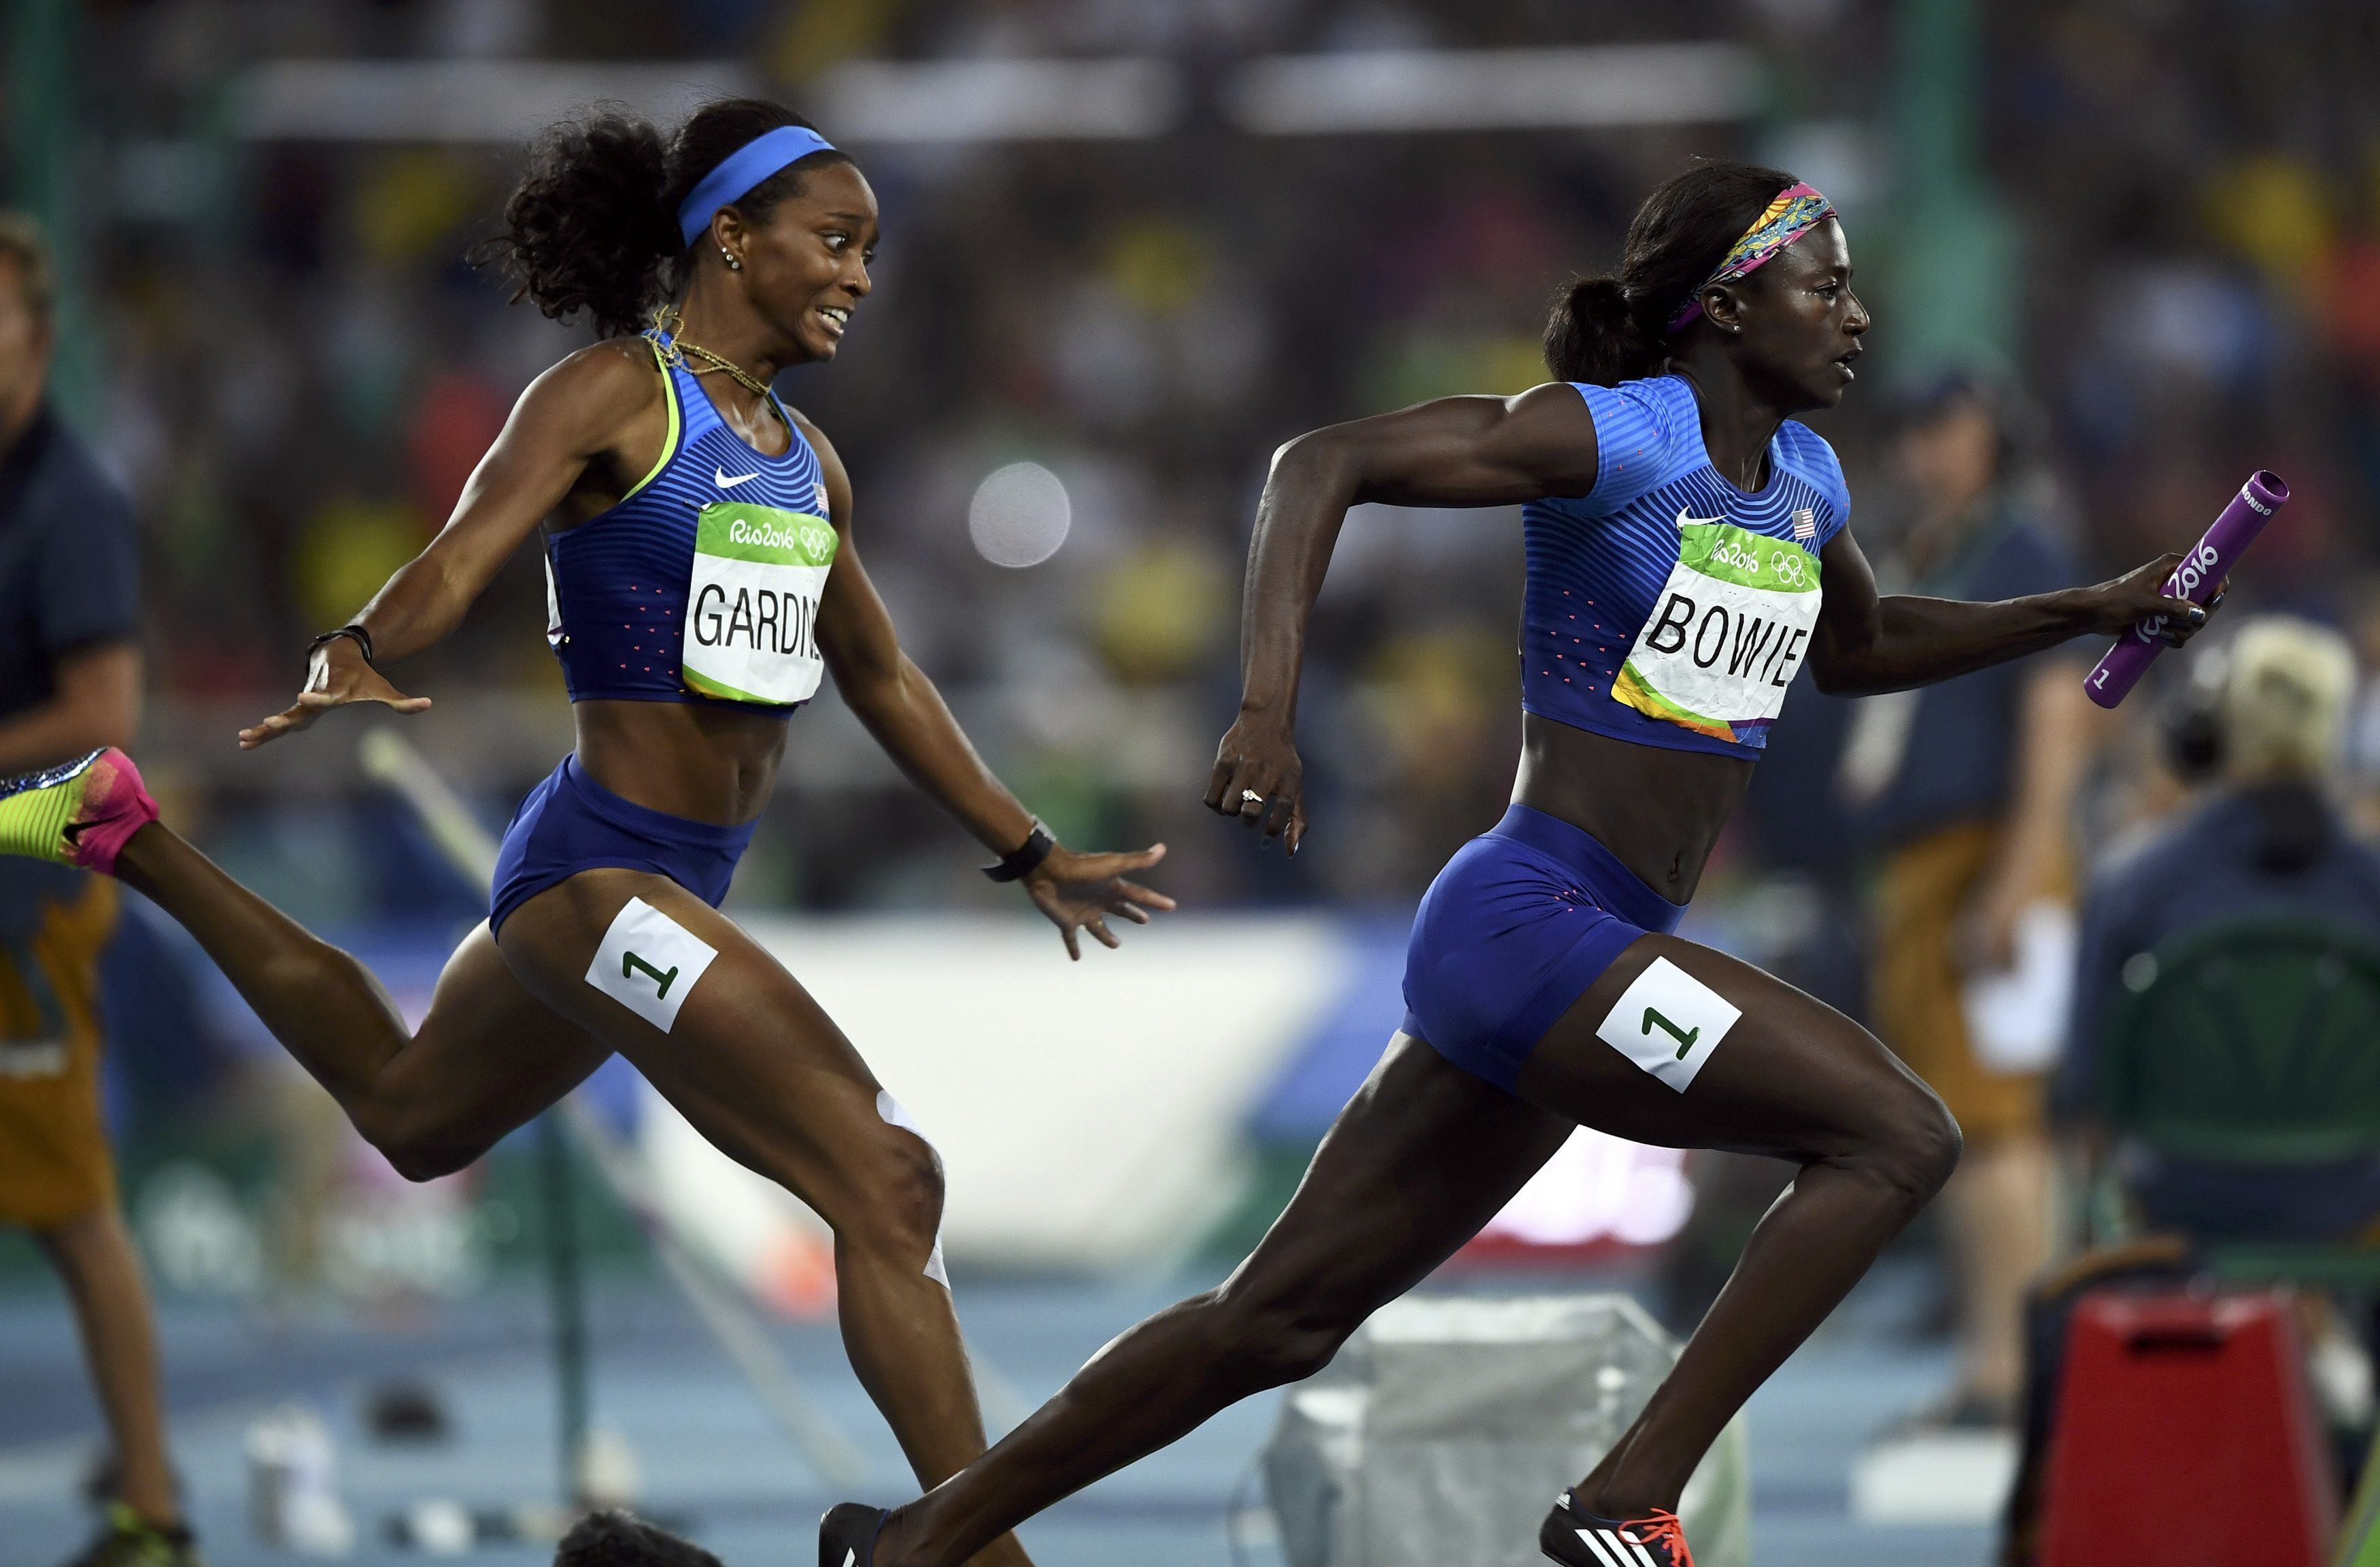 United States' English Gardner hands the baton to anchor Tori Bowie during the women's 4x100-meter relay final at the Rio de Janairo Olympics on Friday. The team won the gold medal for the second straight Summer Games.   | REUTERS